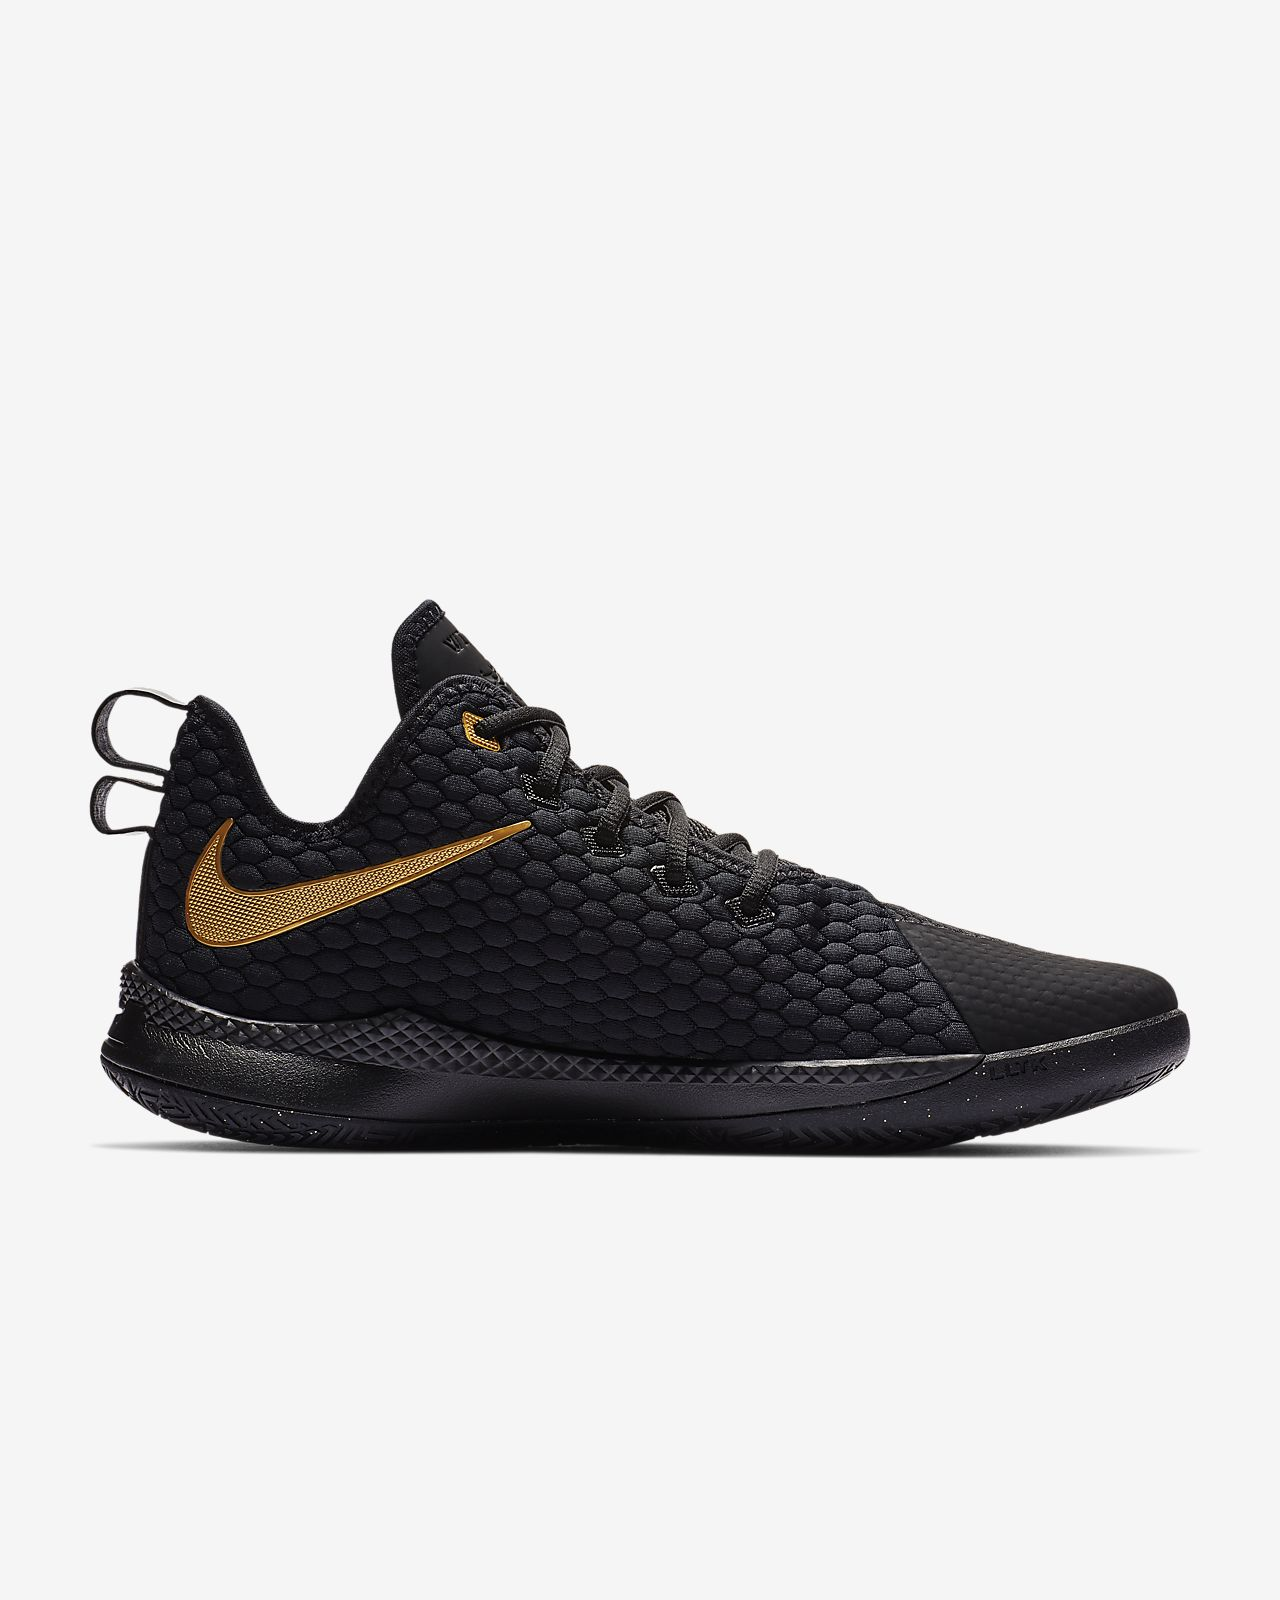 Chaussure LeBron Witness III pour Homme